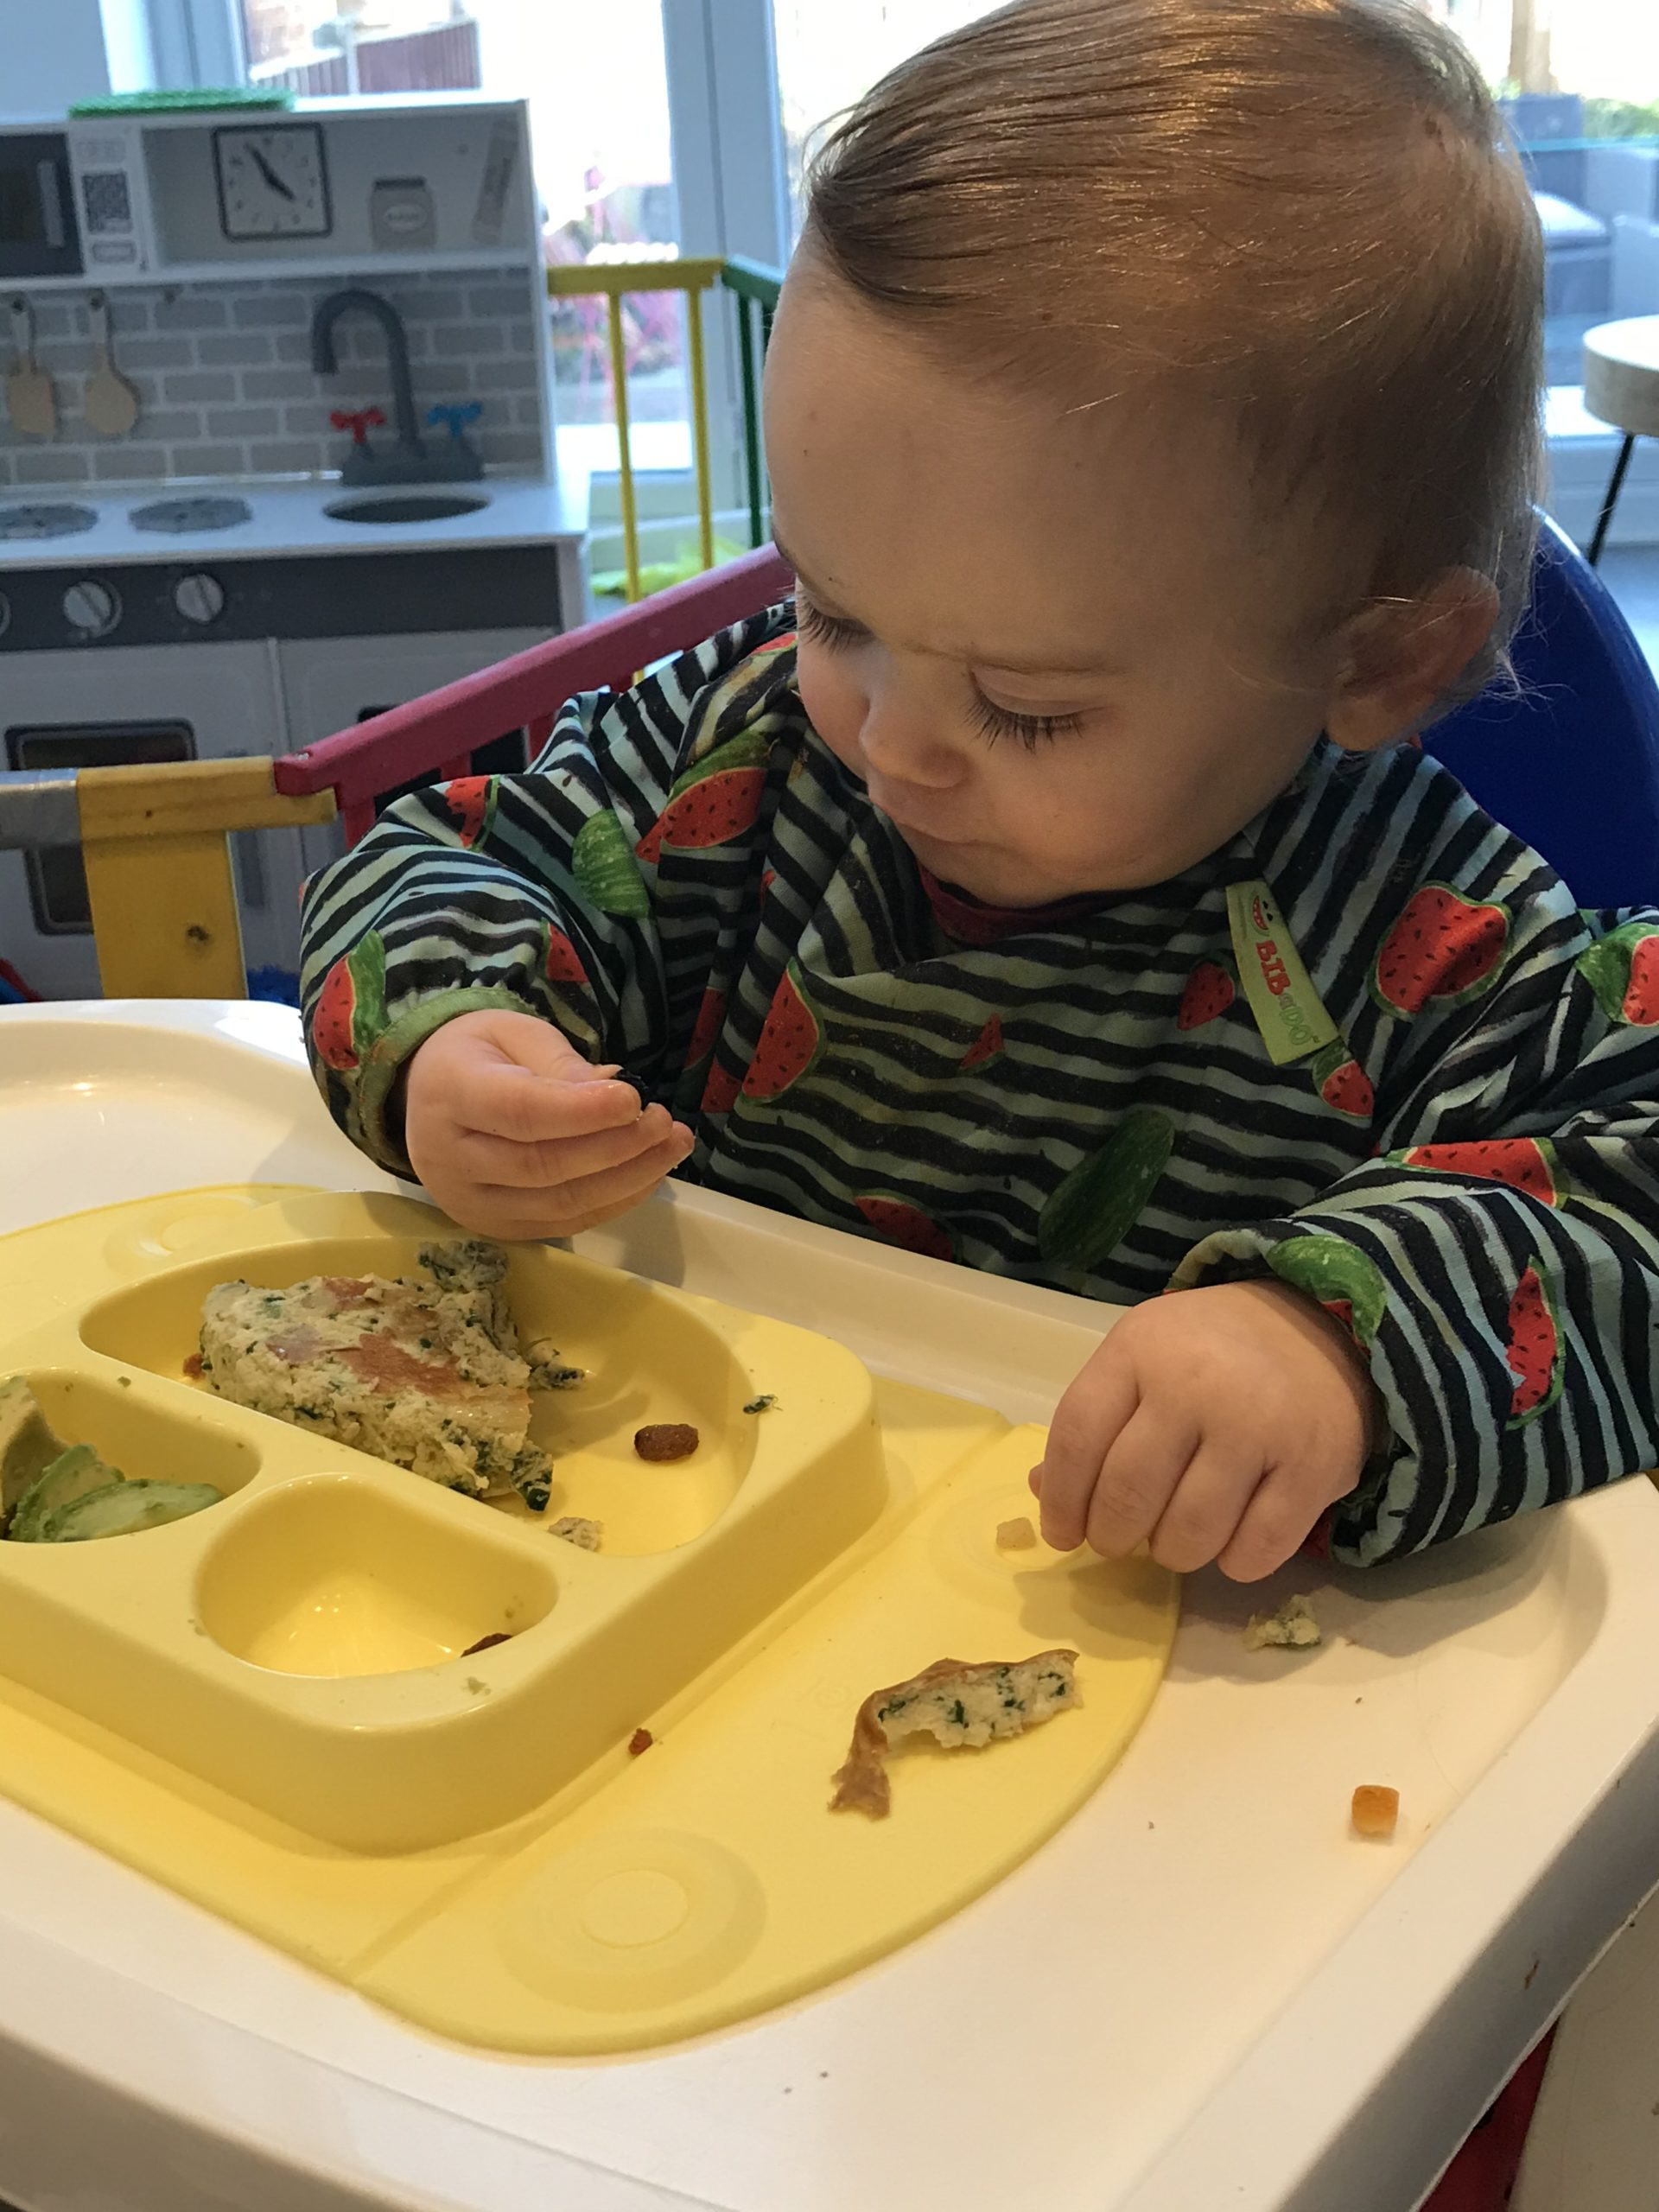 Baby Led Weaning Accessories to Make Your Life So Much Easier